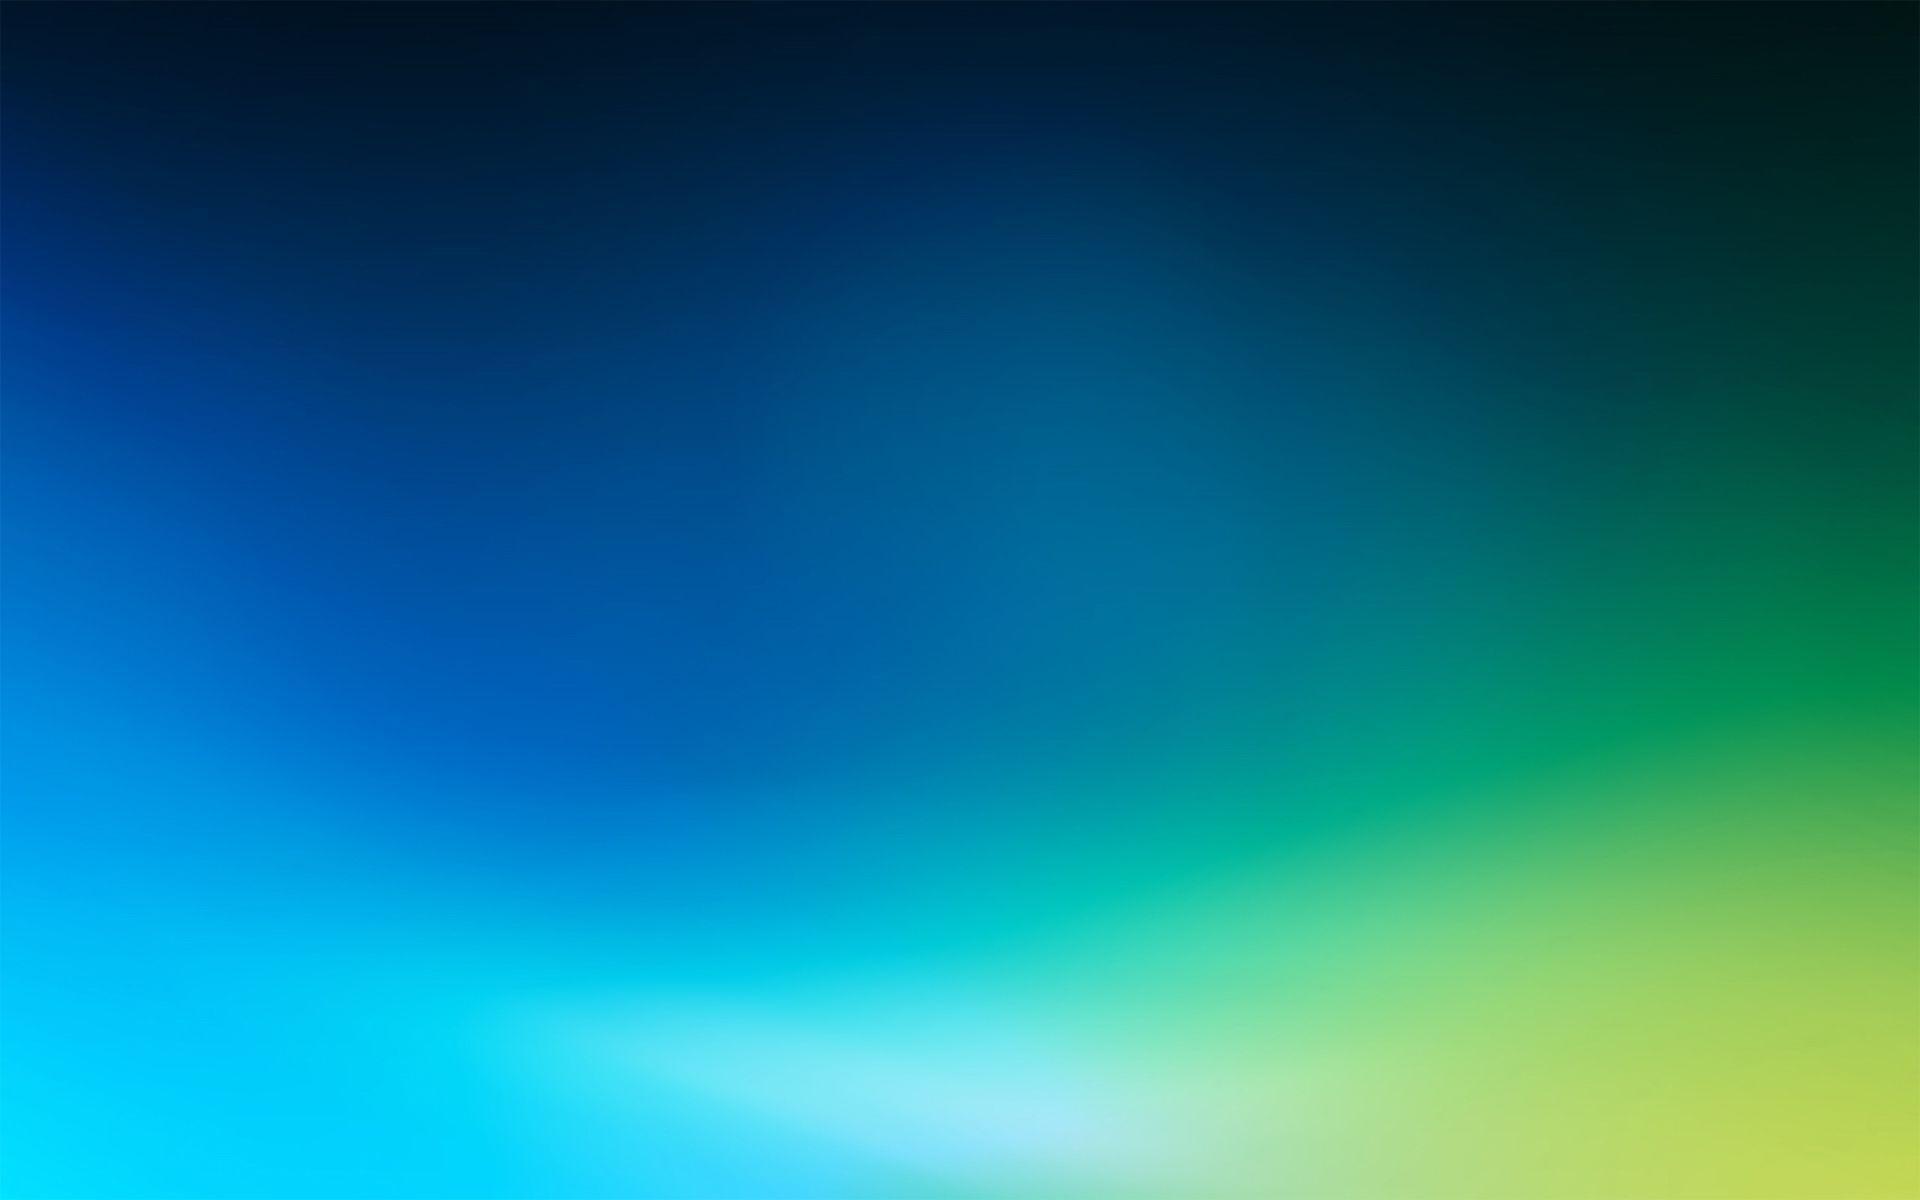 41 Gradient Backgrounds Download Free Beautiful Full Hd